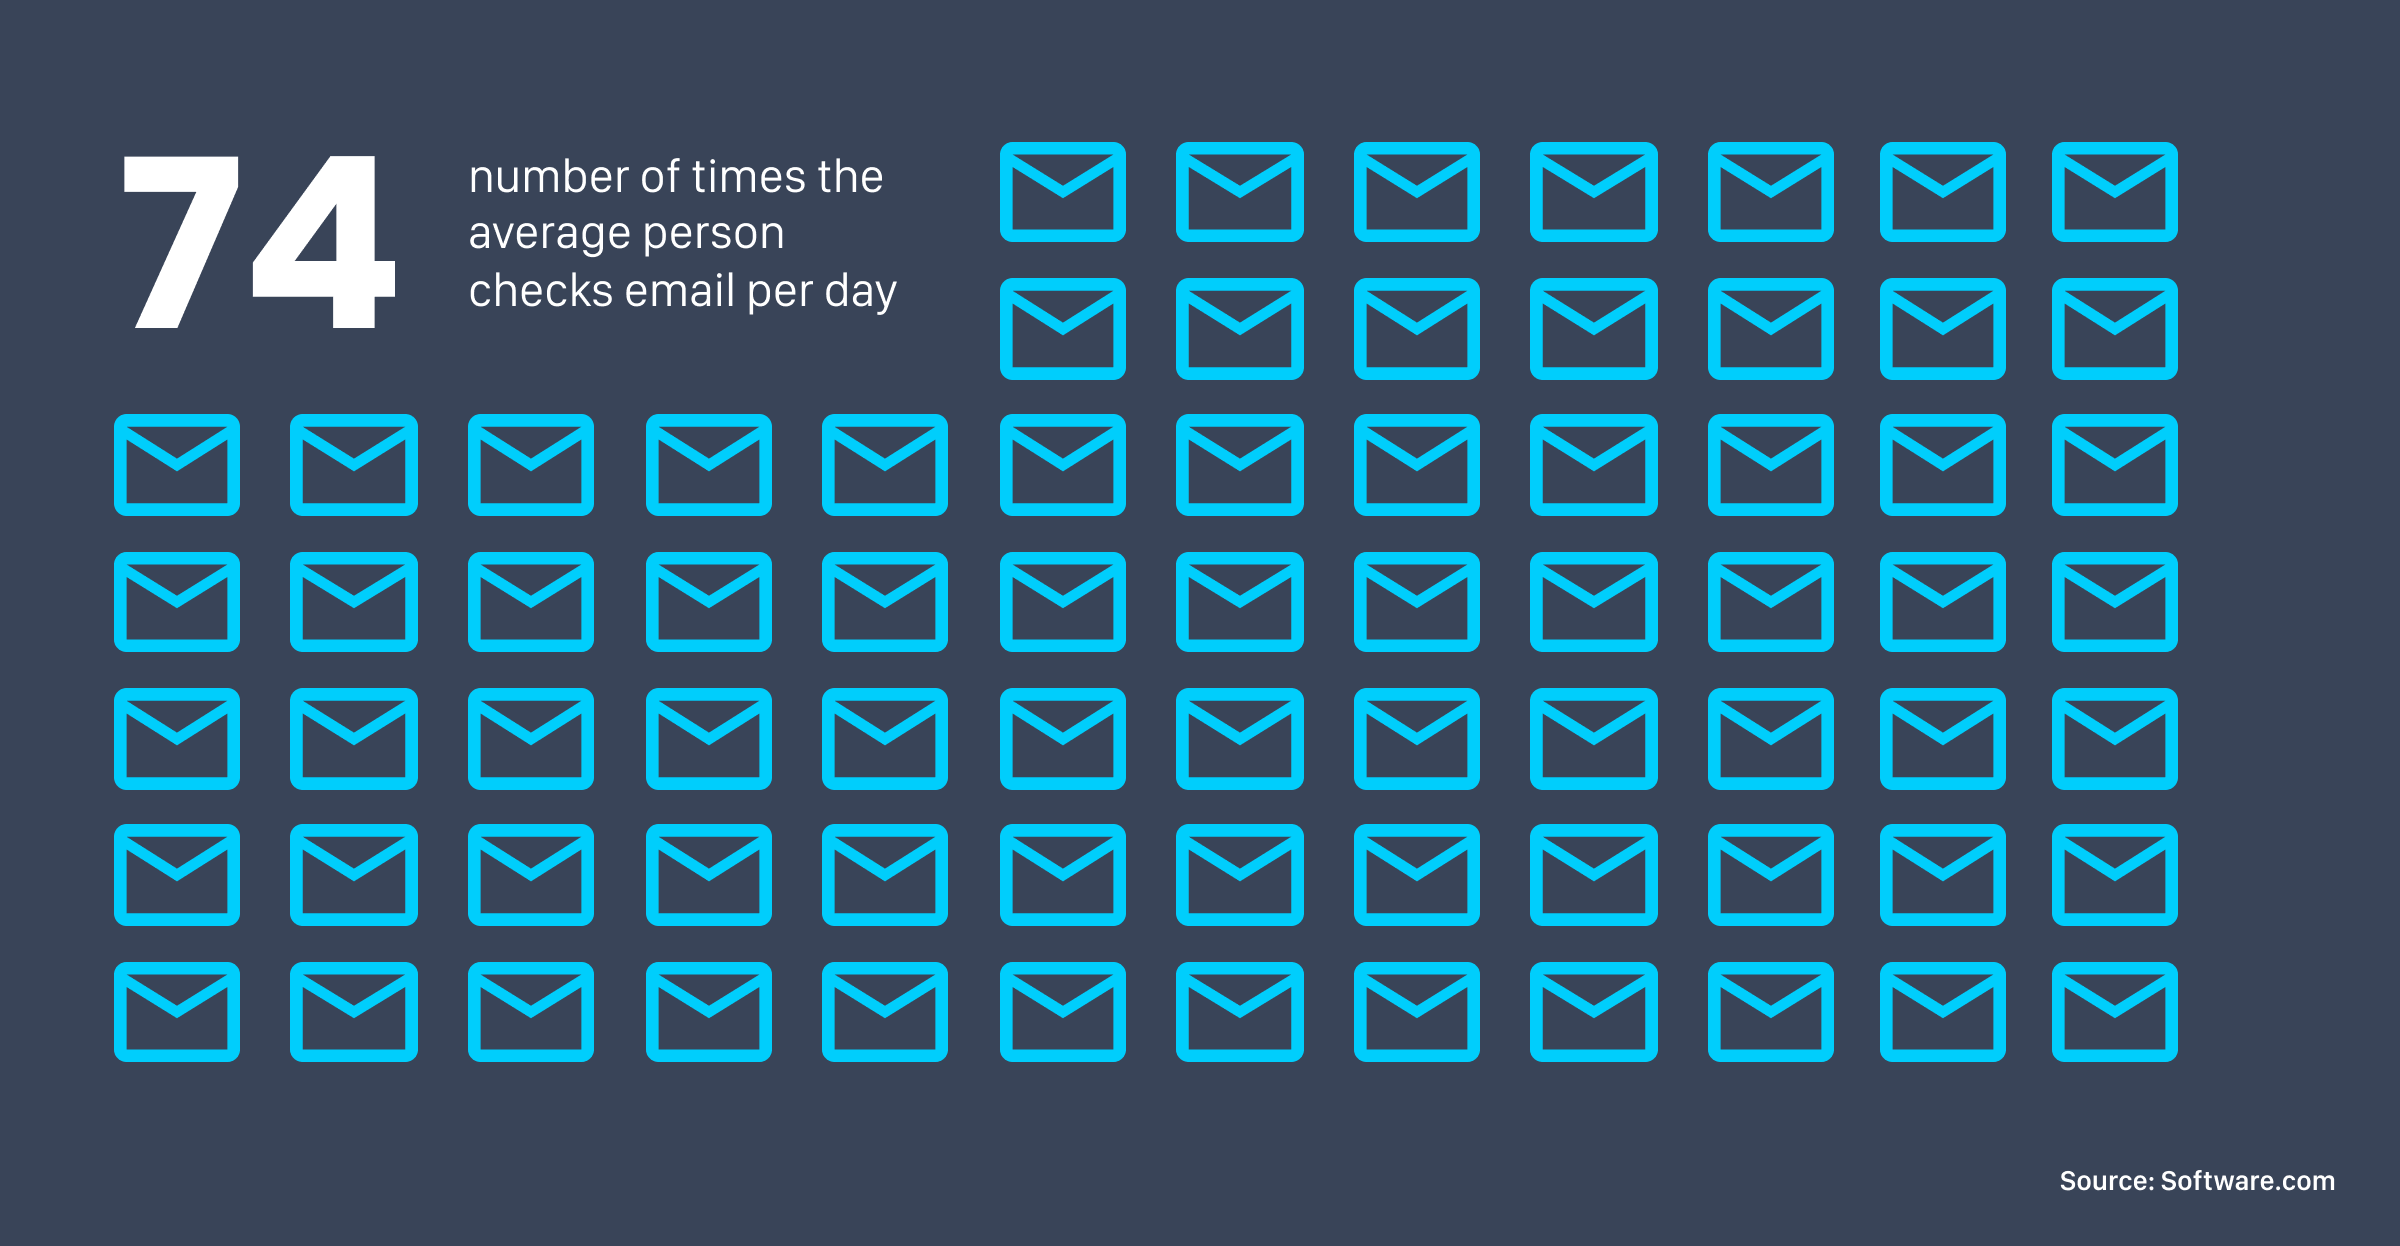 The average person checks email 74 times per day, showing a growing number of context switches that hurt developer productivity